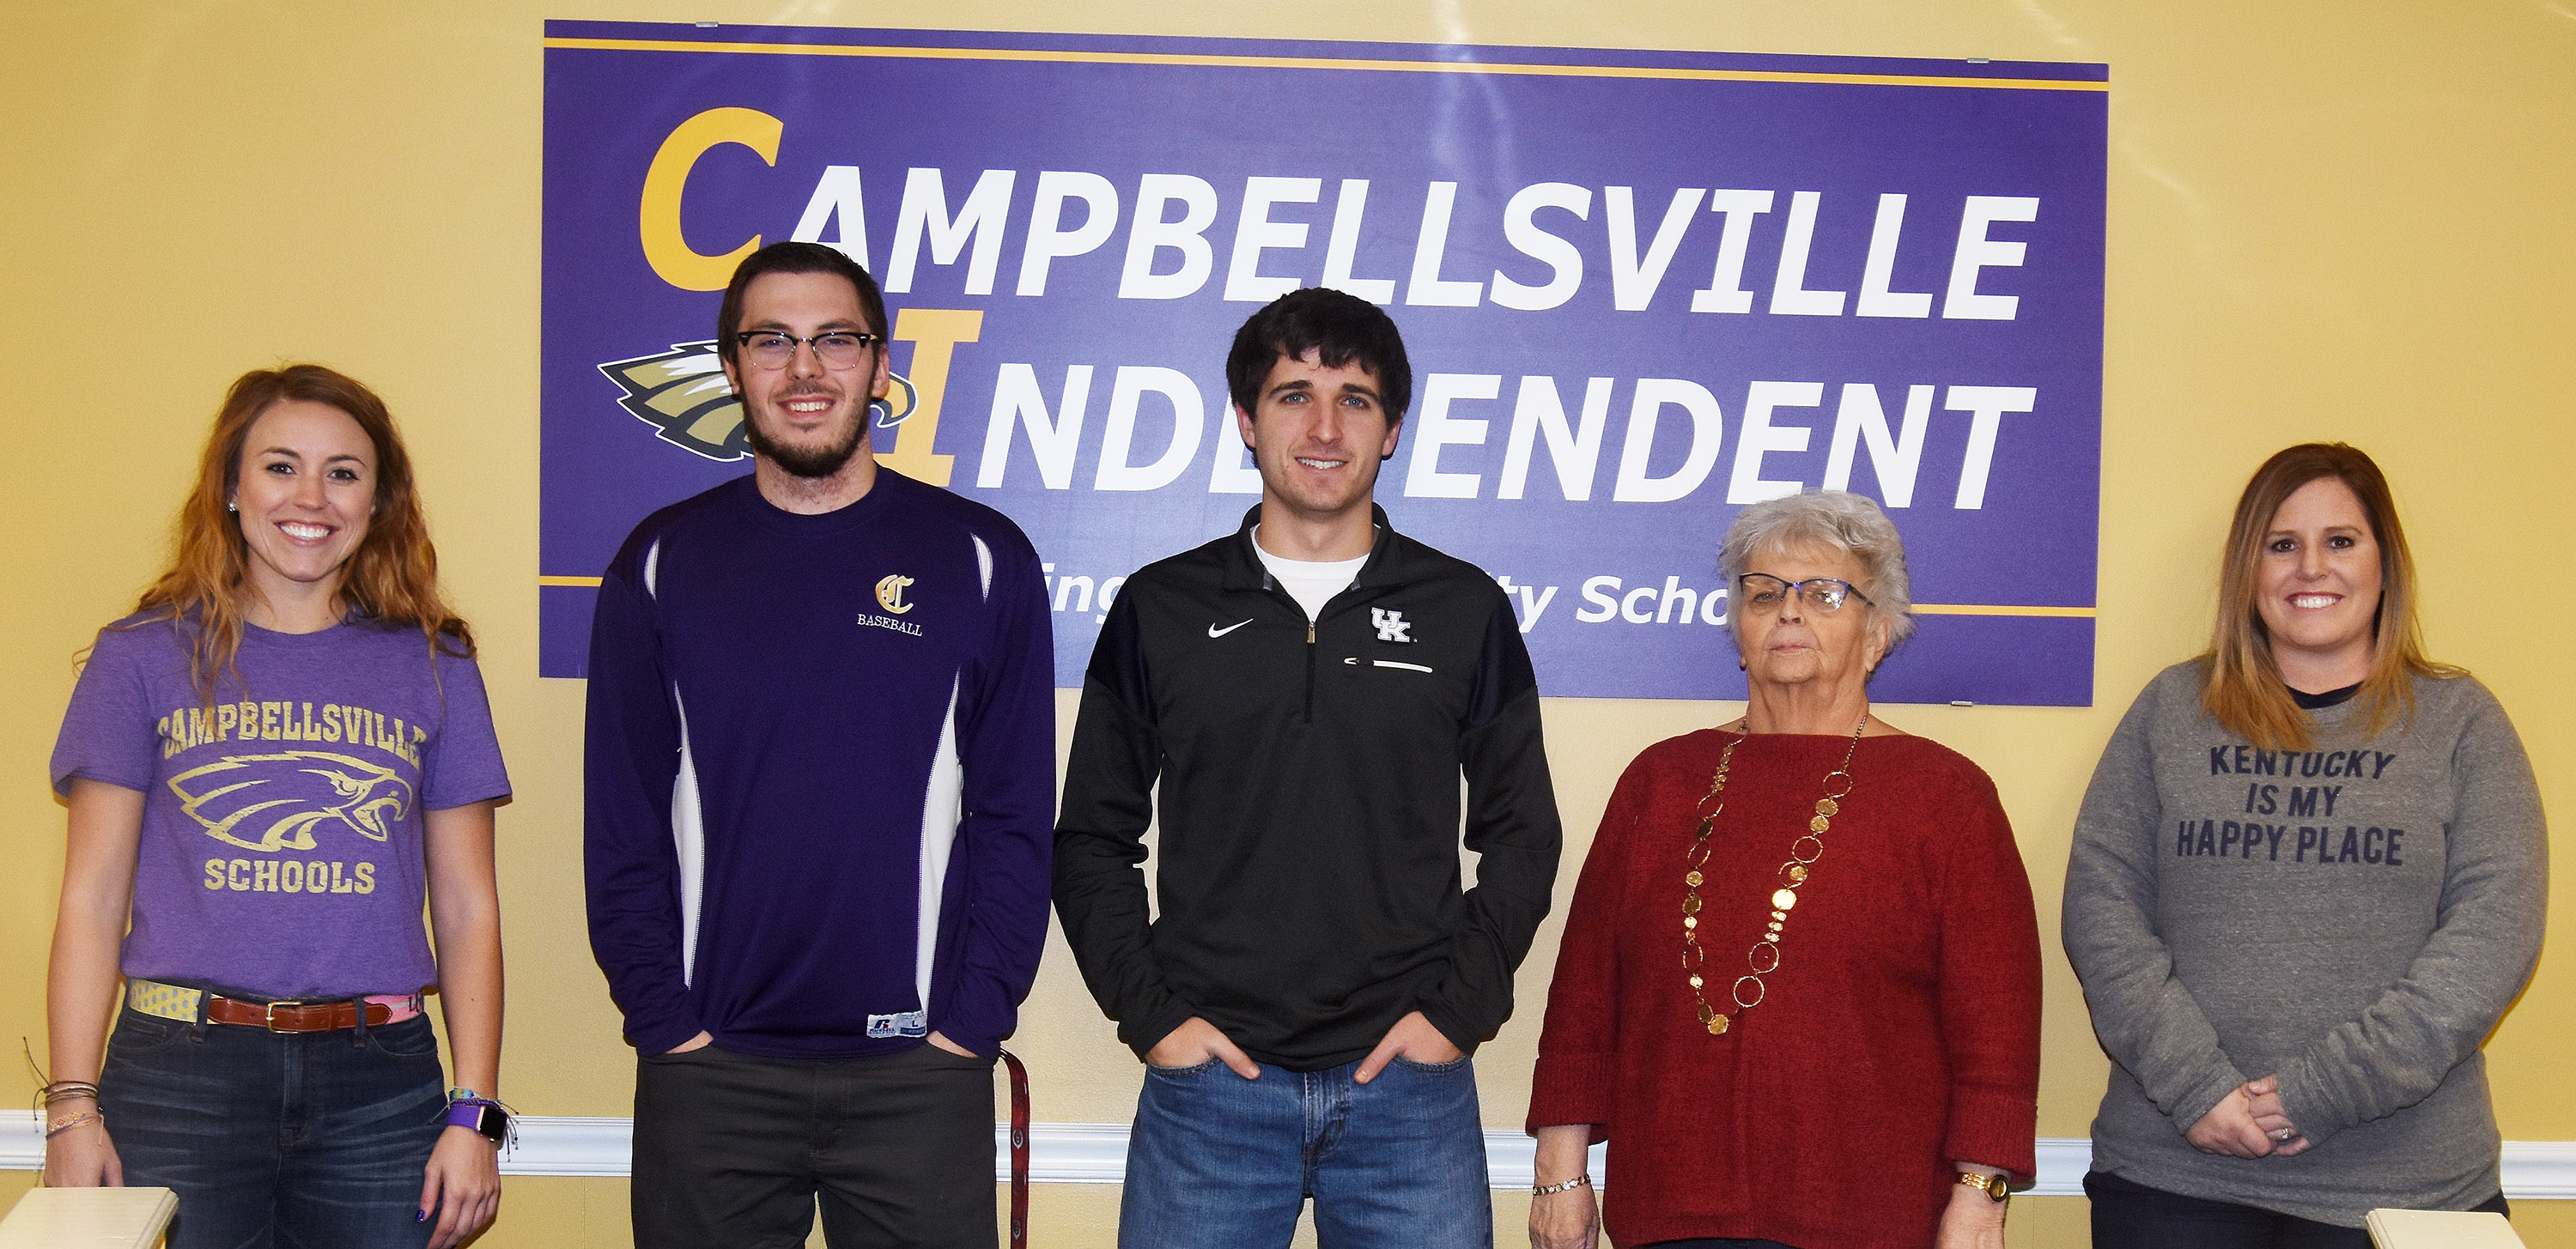 Campbellsville Independent Schools recently added five employees to the Eagle family. From left are LeeAnn Grider, sixth- and seventh-grade math teacher at Campbellsville Middle School; Weston Horn, instructional assistant at Campbellsville Elementary School; Jacob Burdette, virtual lab instructor at Campbellsville High School; Judy Cox, media center assistant at CES; and Rebecca Lawless, attendance clerk at CHS.